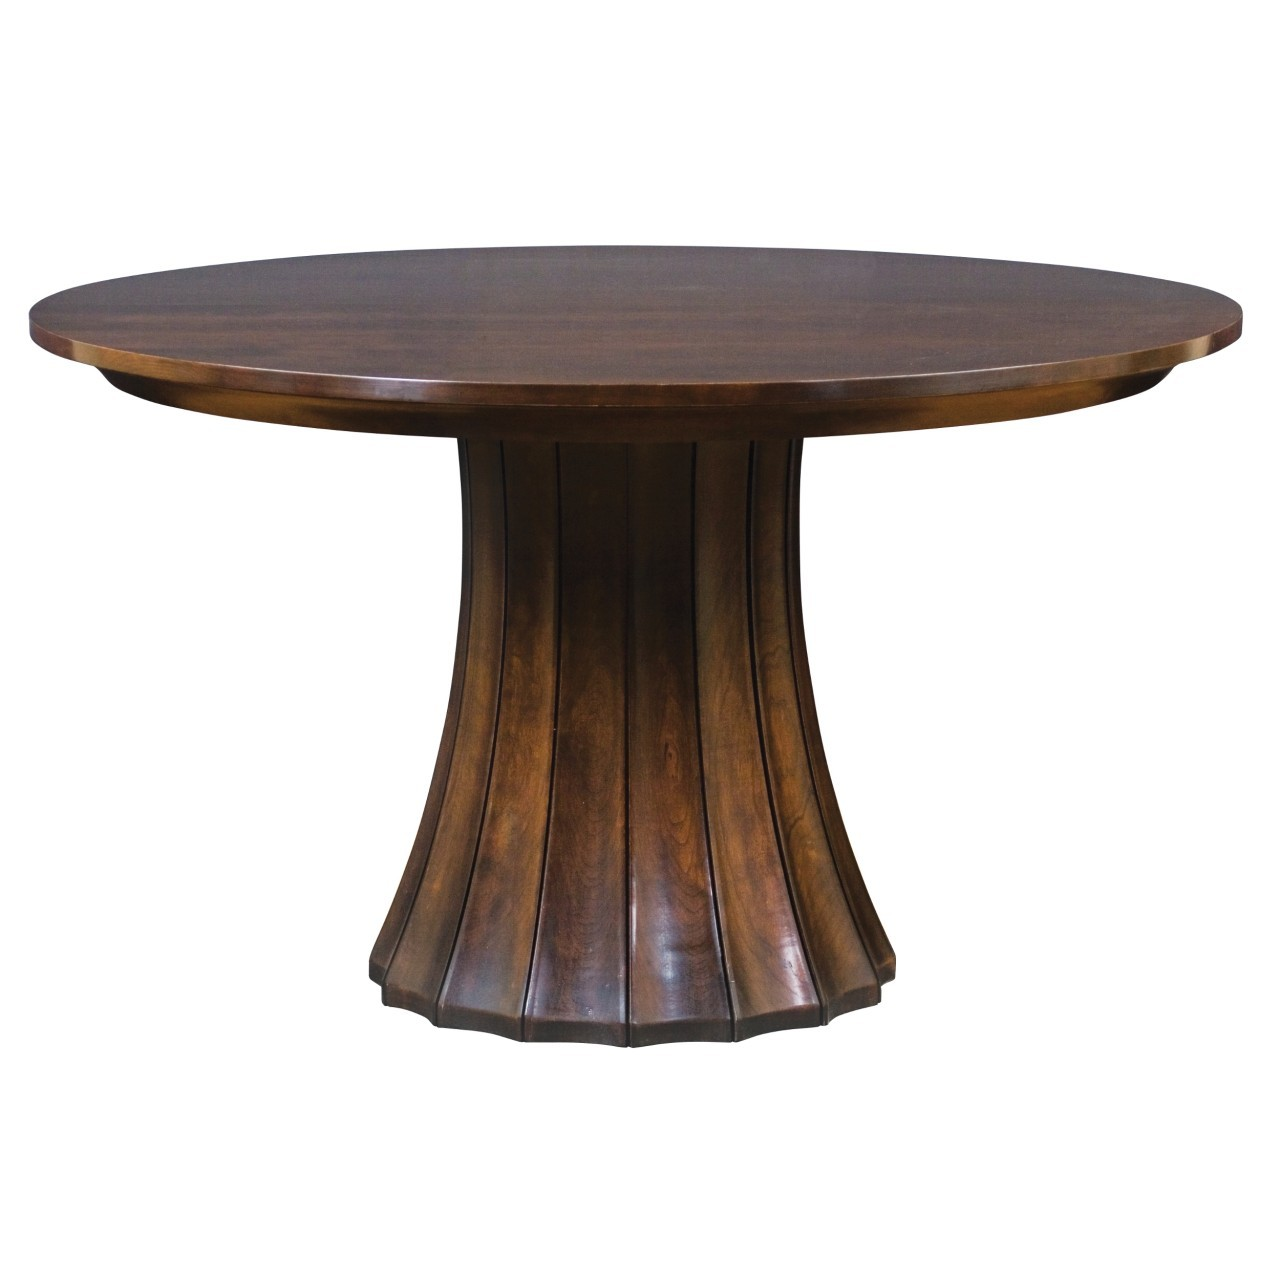 1280x1280px 6 Awesome Pedestal Bases For Dining Tables Picture in Furniture